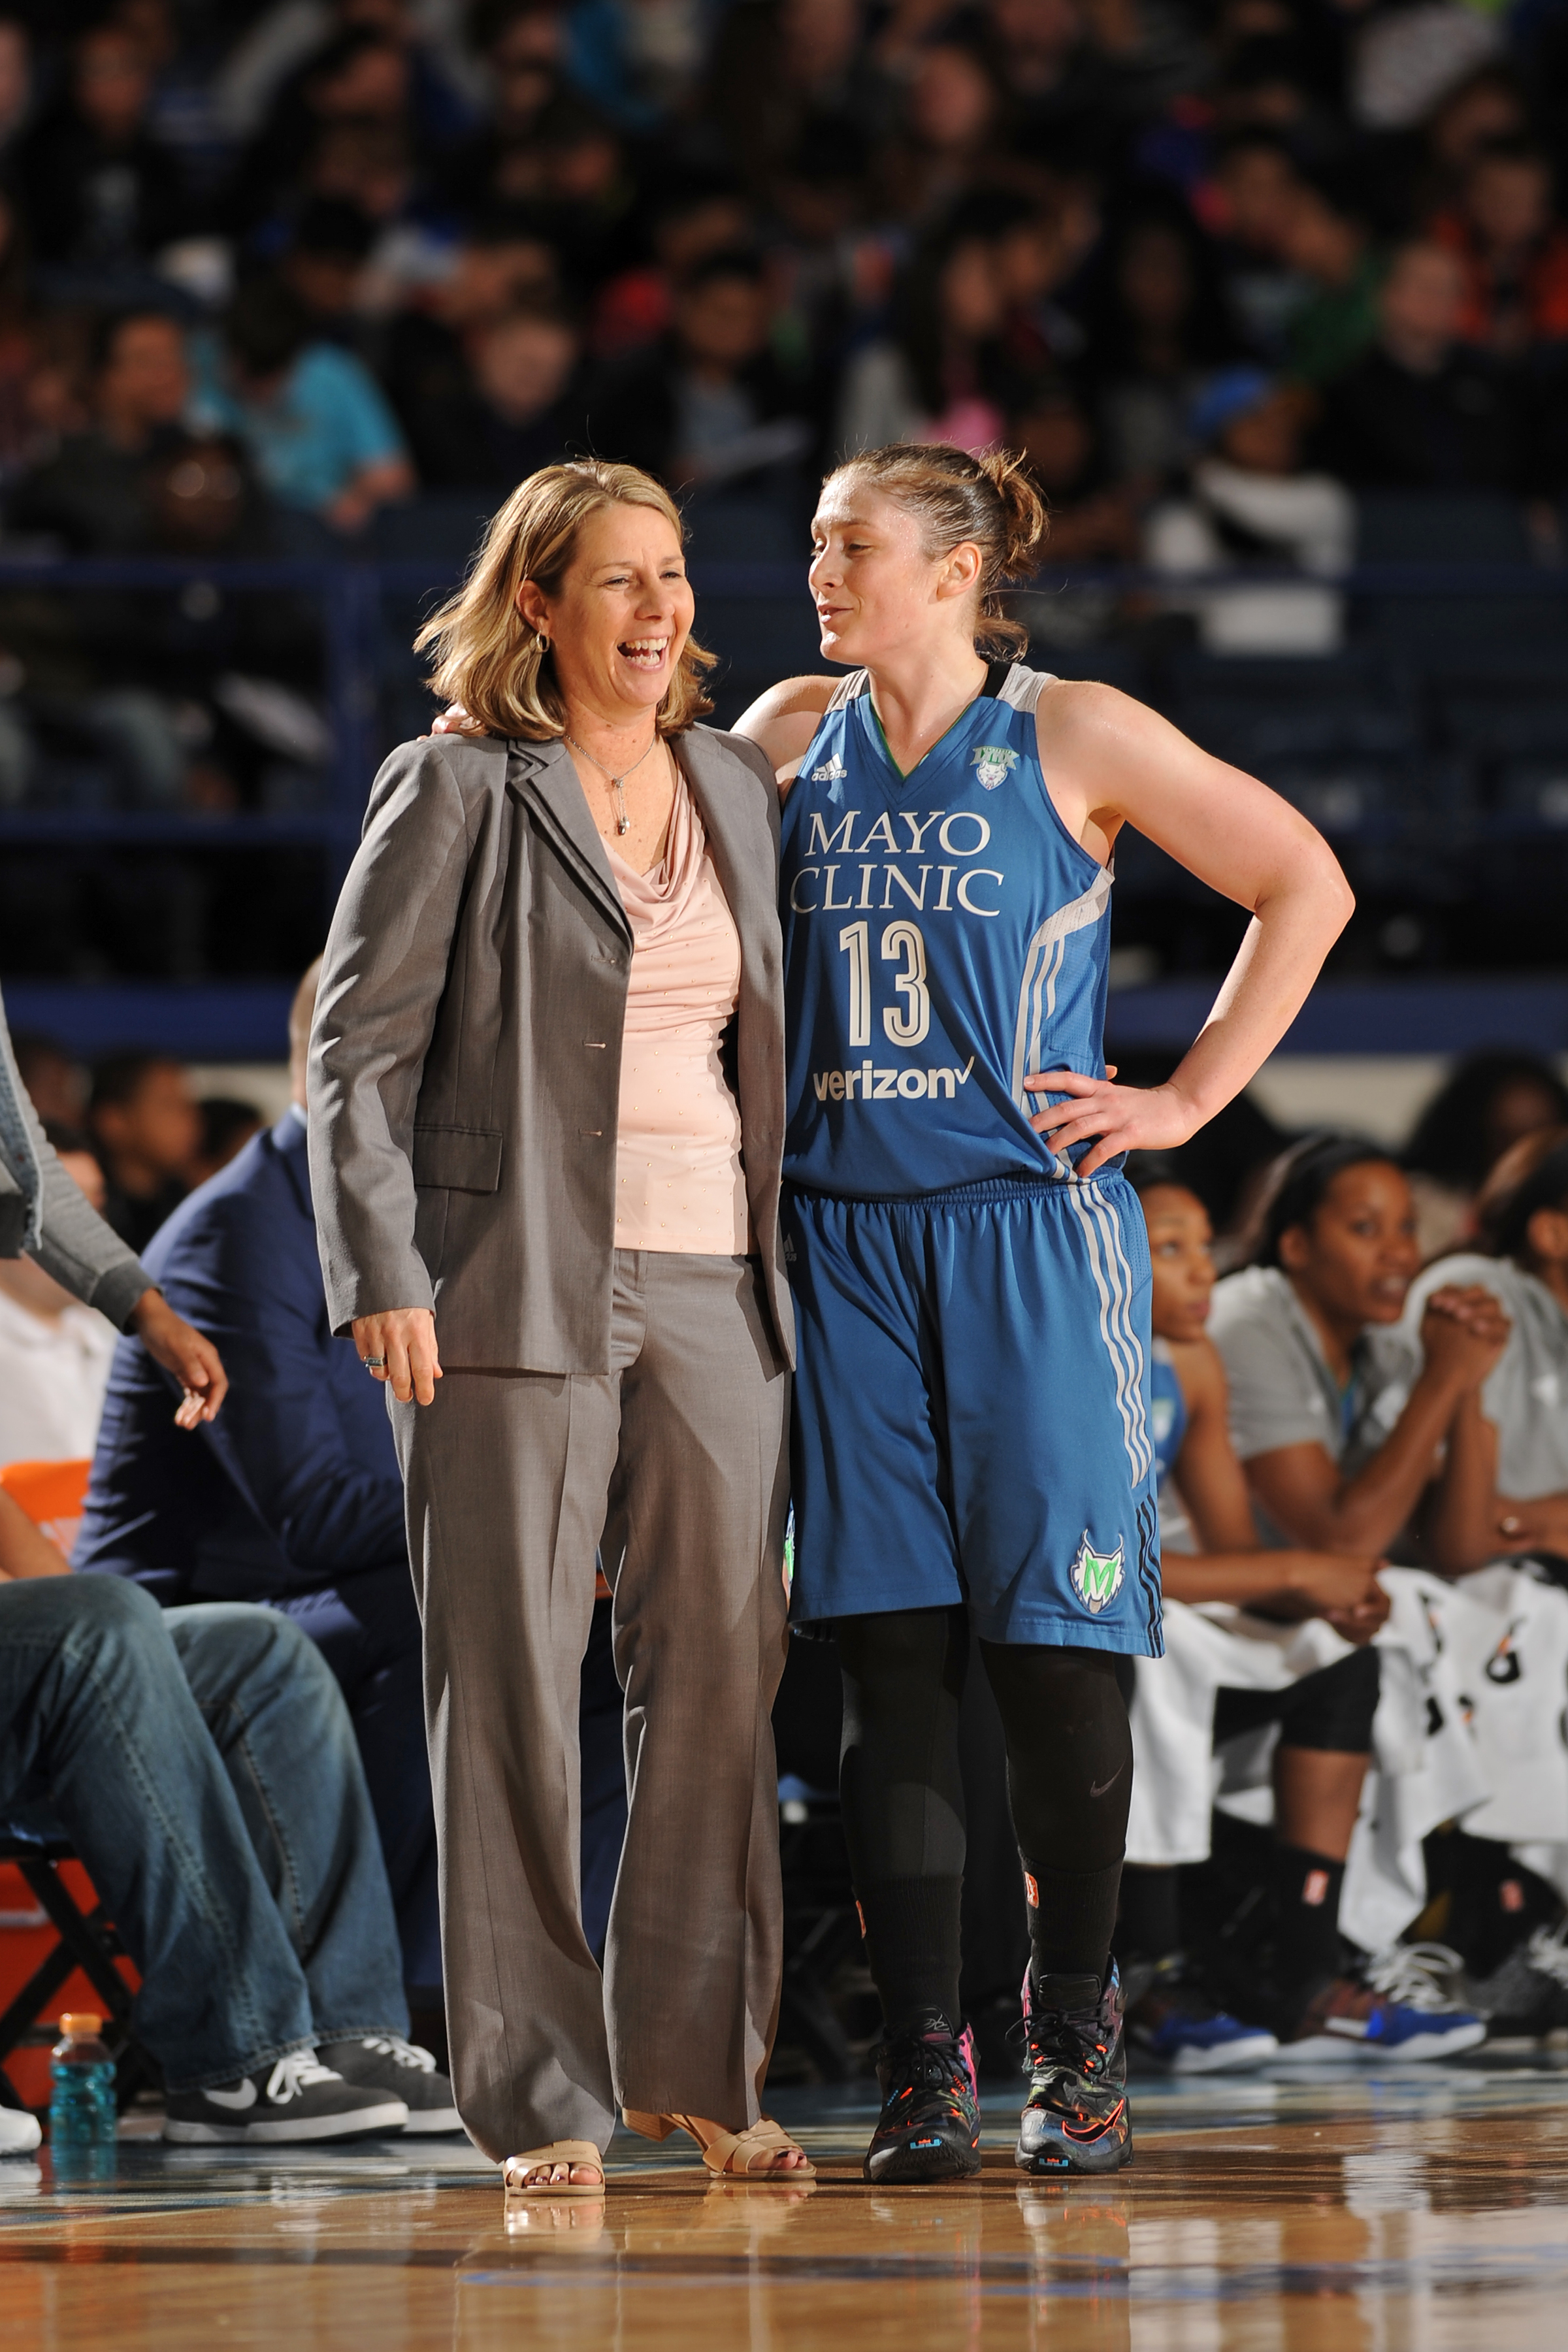 ROSEMONT, IL- MAY 18: Lindsay Whalen #13 of the Minnesota Lynx talks with head coach Cheryl Reeve during the game against the Chicago Sky on May 18, 2016 at the Allstate Arena in Rosemont, Illinois. NOTE TO USER: User expressly acknowledges and agrees that, by downloading and/or using this photograph, user is consenting to the terms and conditions of the Getty Images License Agreement. Mandatory Copyright Notice: Copyright 2016 NBAE (Photo by Randy Belice/NBAE via Getty Images)